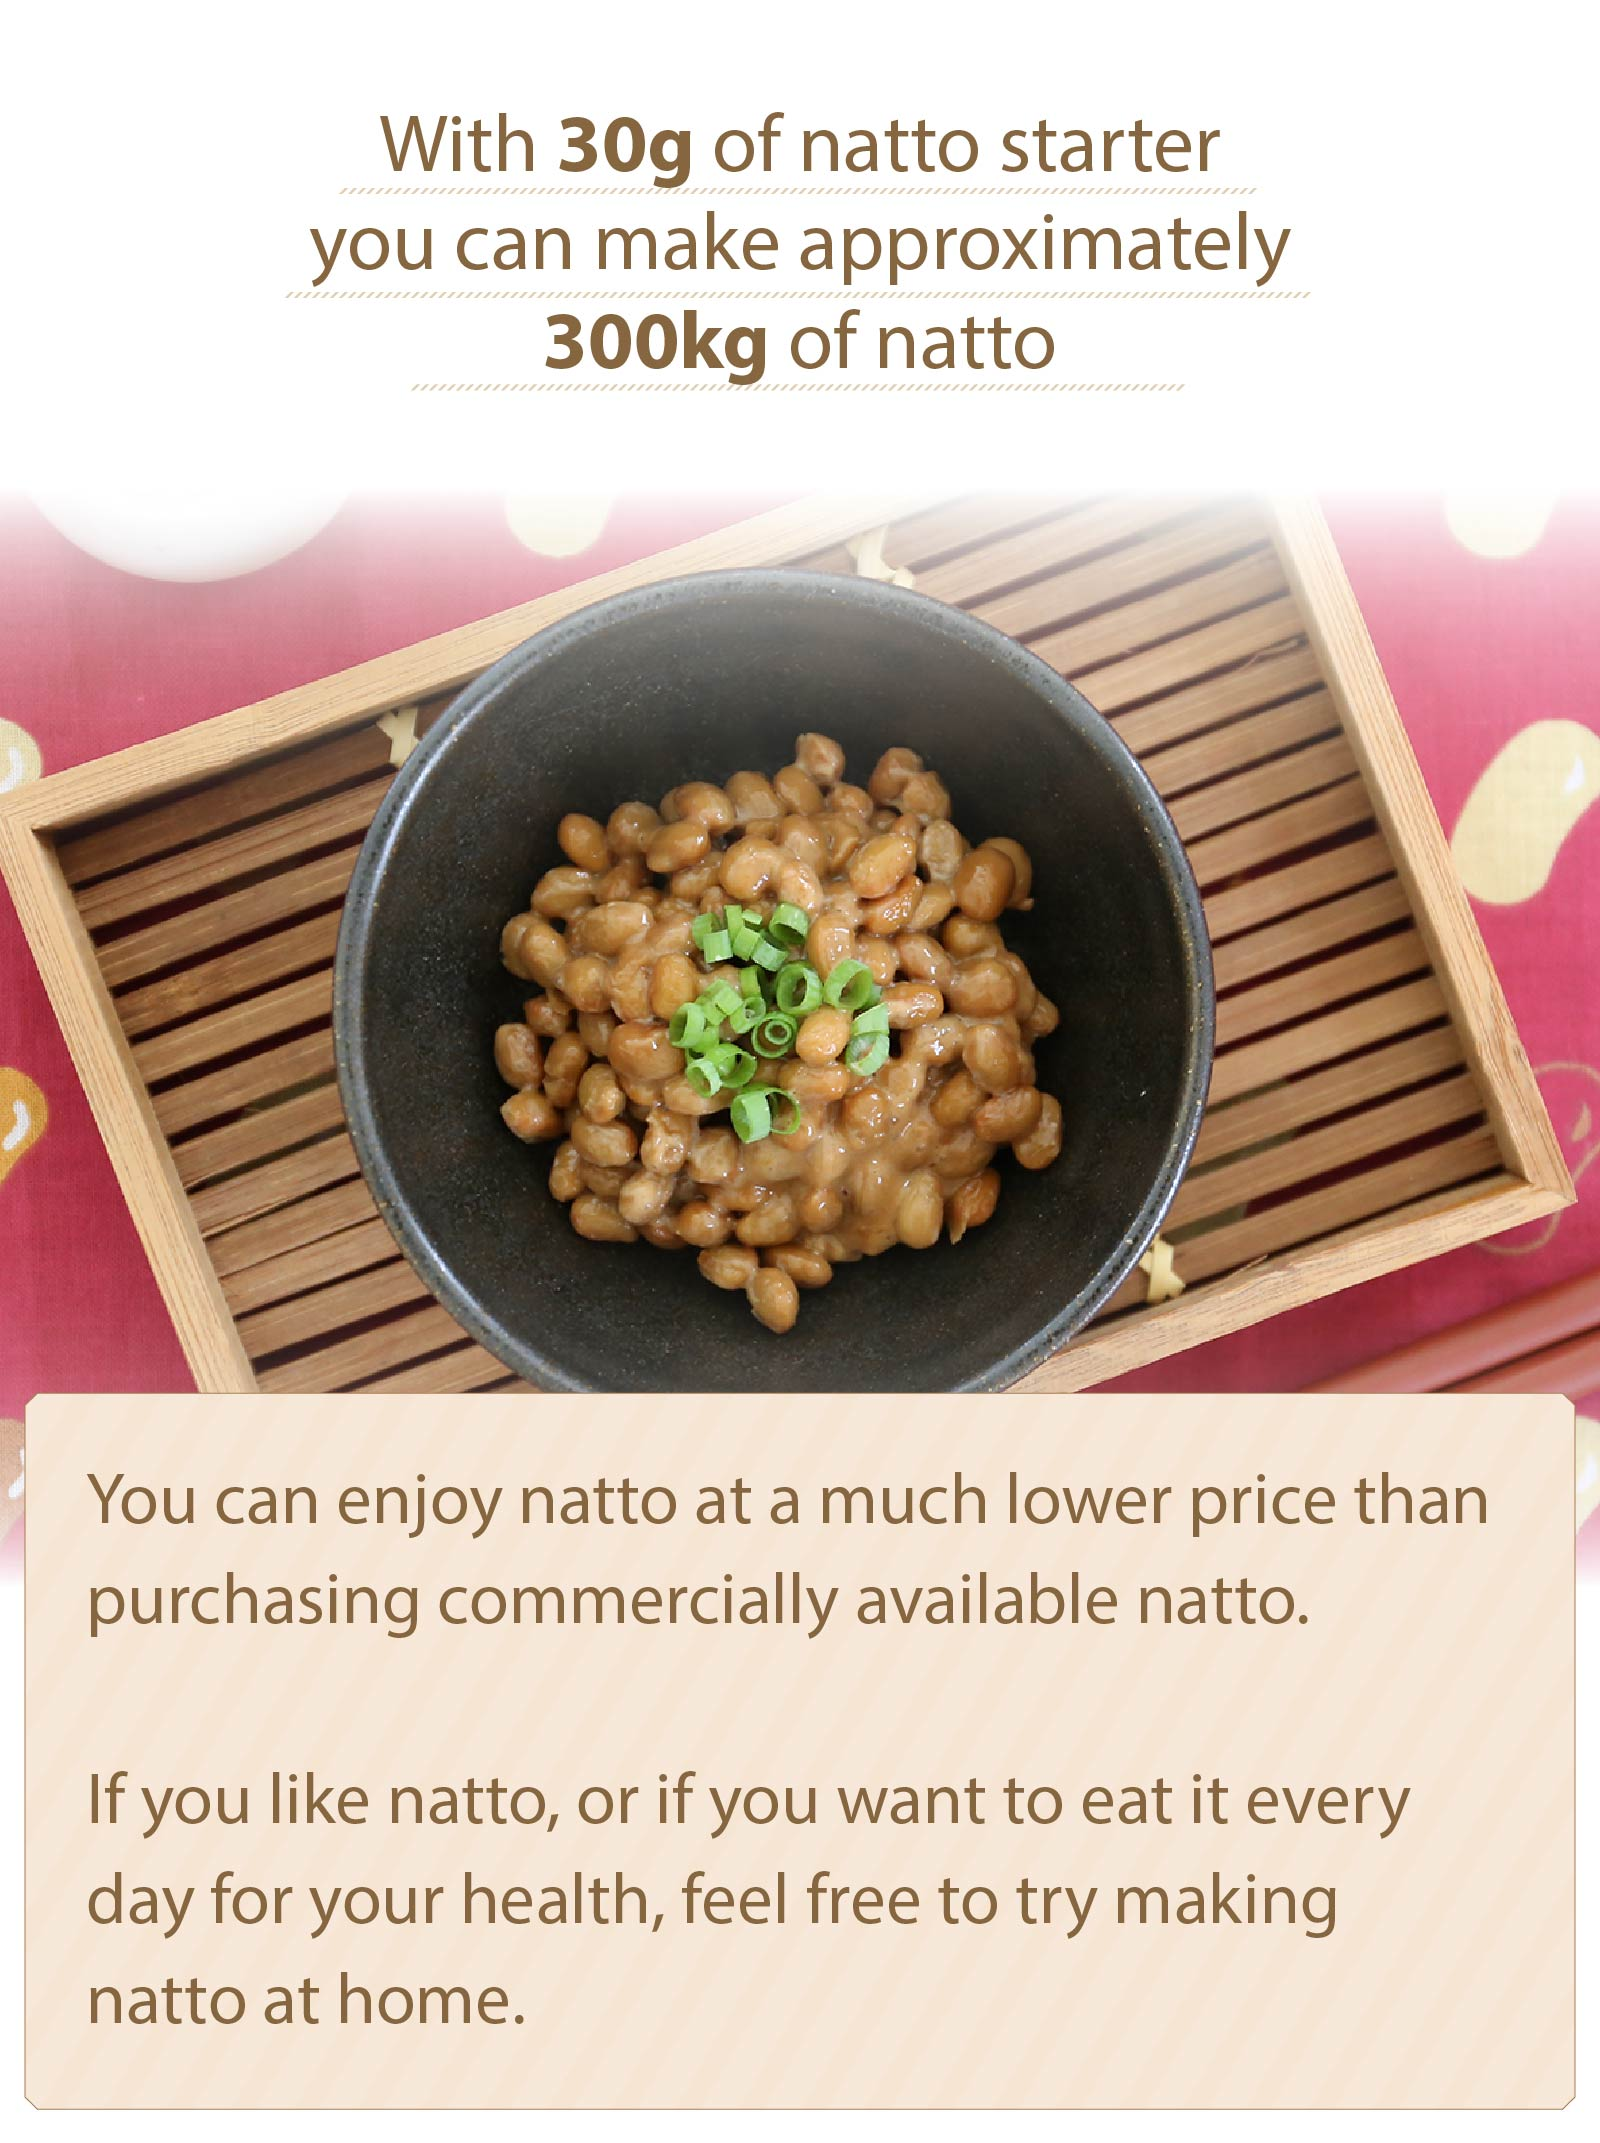 30g Natto Can Make Up to 300kg of Natto